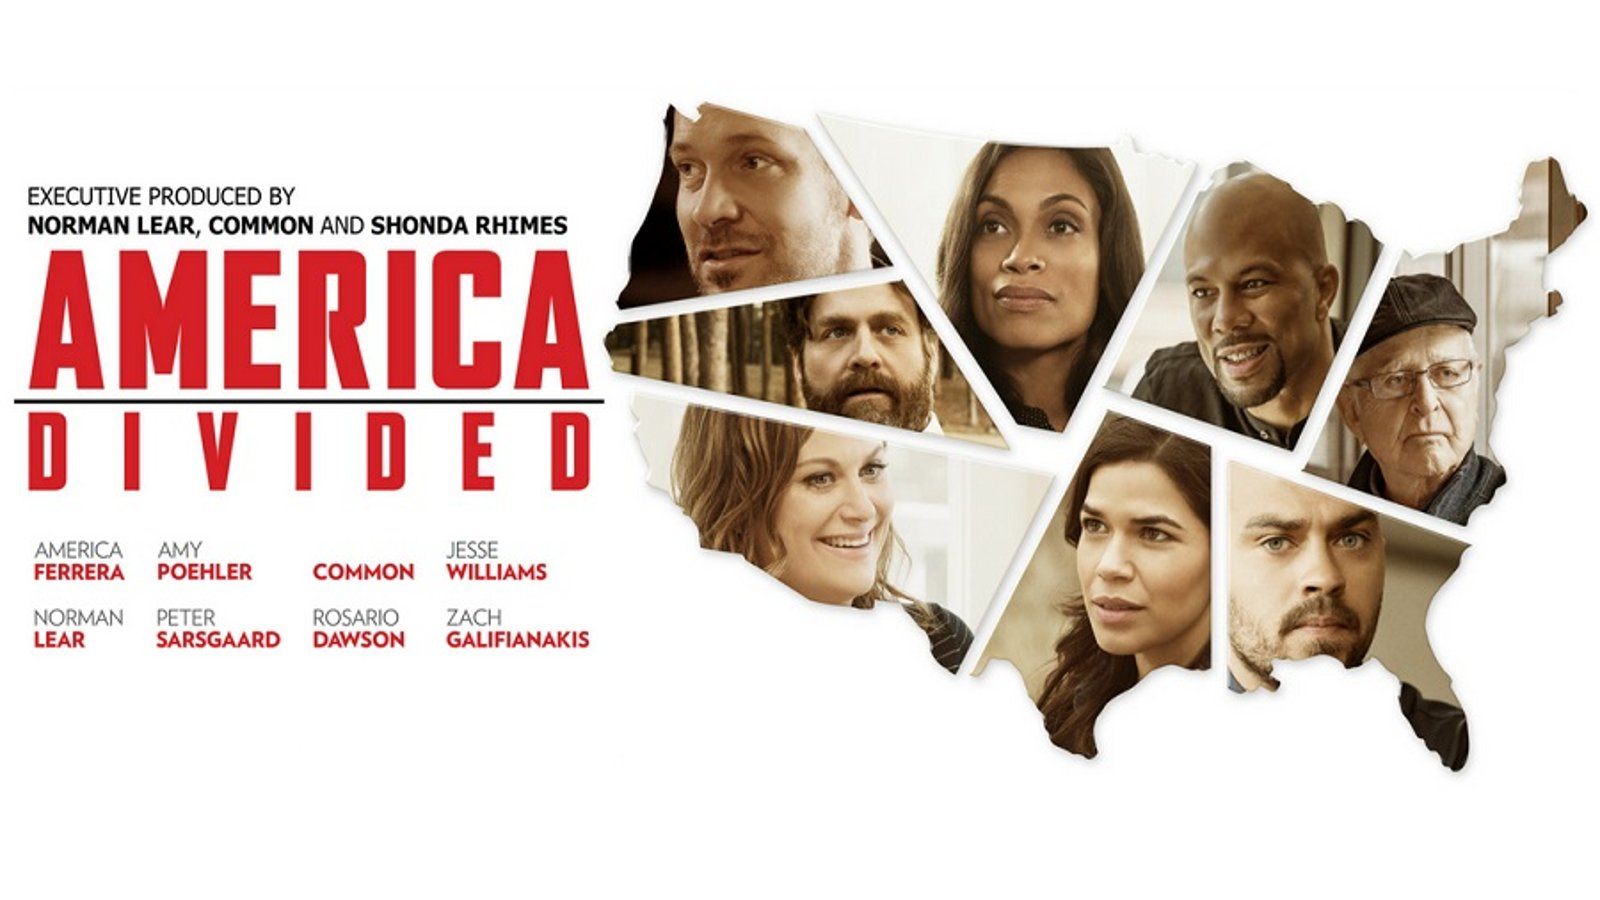 America Divided - In a Divided Country, Our Stories Unite Us